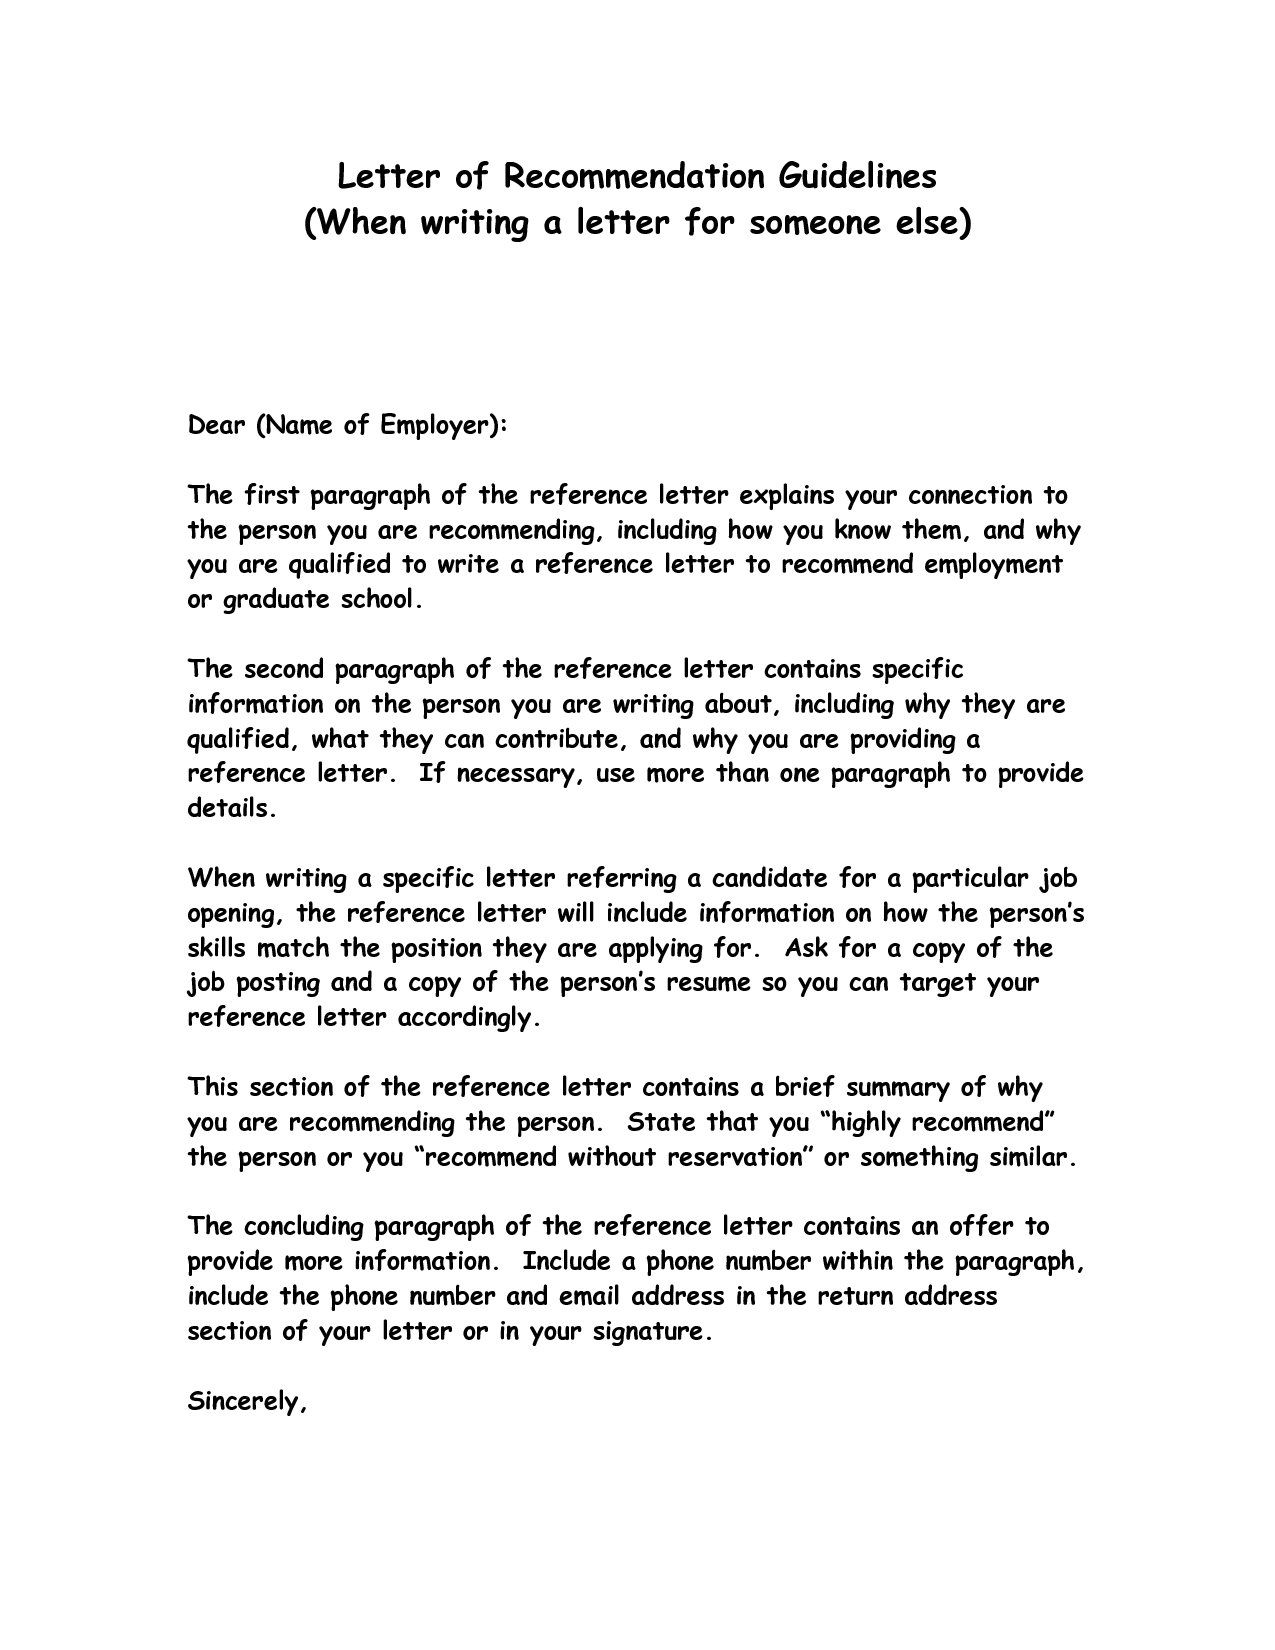 Personal letter of recommendation reference letter1 writing a personal letter of recommendation reference letter1 writing a reference letter random stuff pinterest reference letter school and employee aljukfo Choice Image